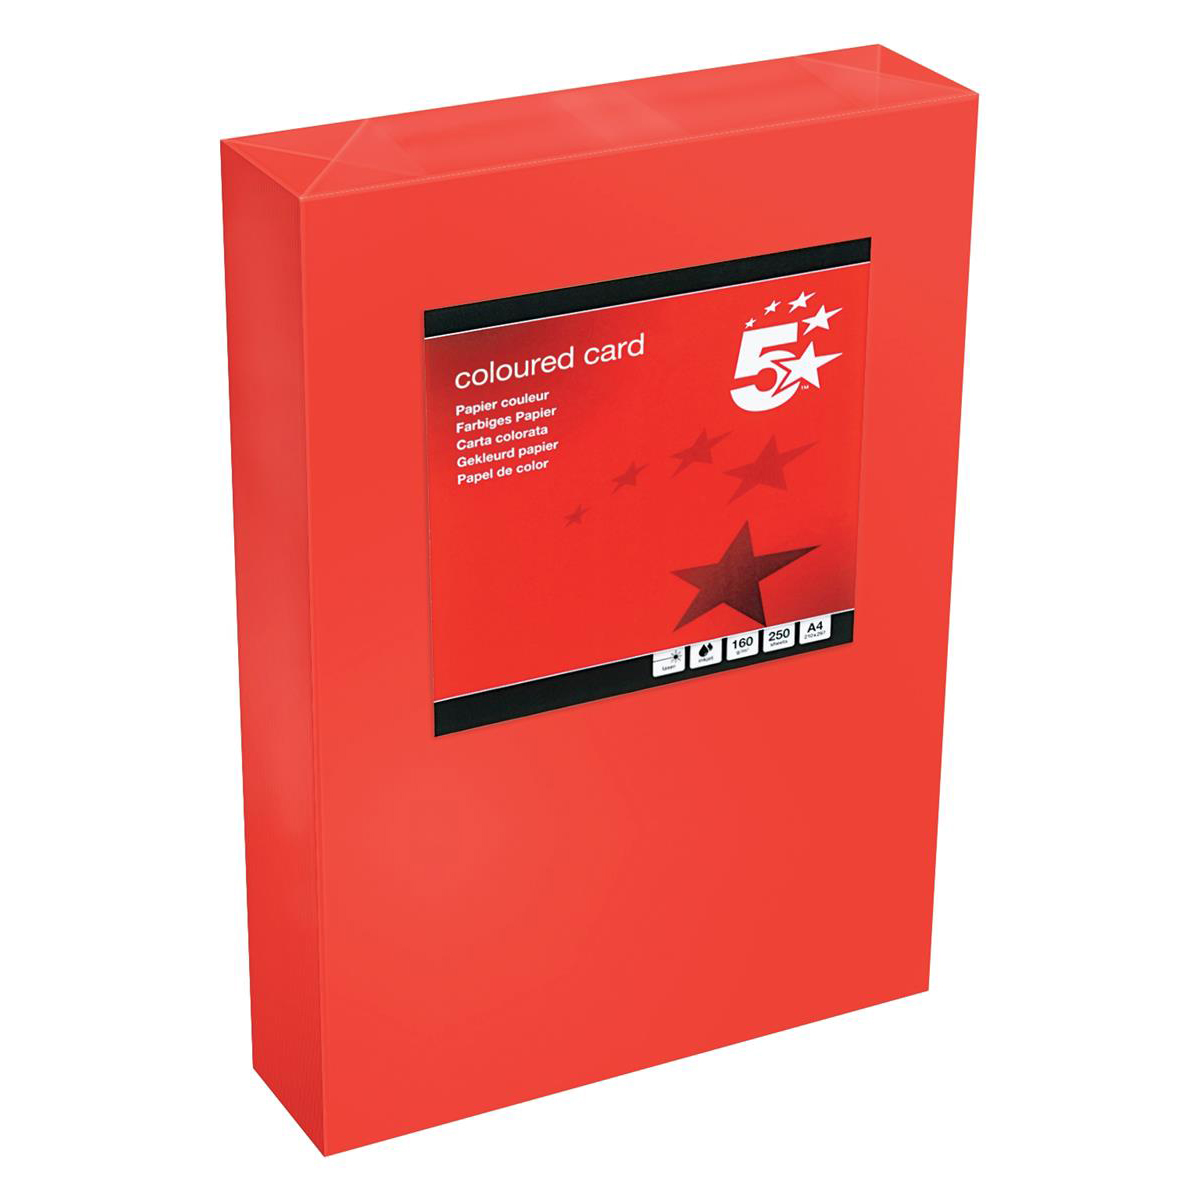 5 Star Office Coloured Card Tinted 160gsm A4 Deep Red Pack 250